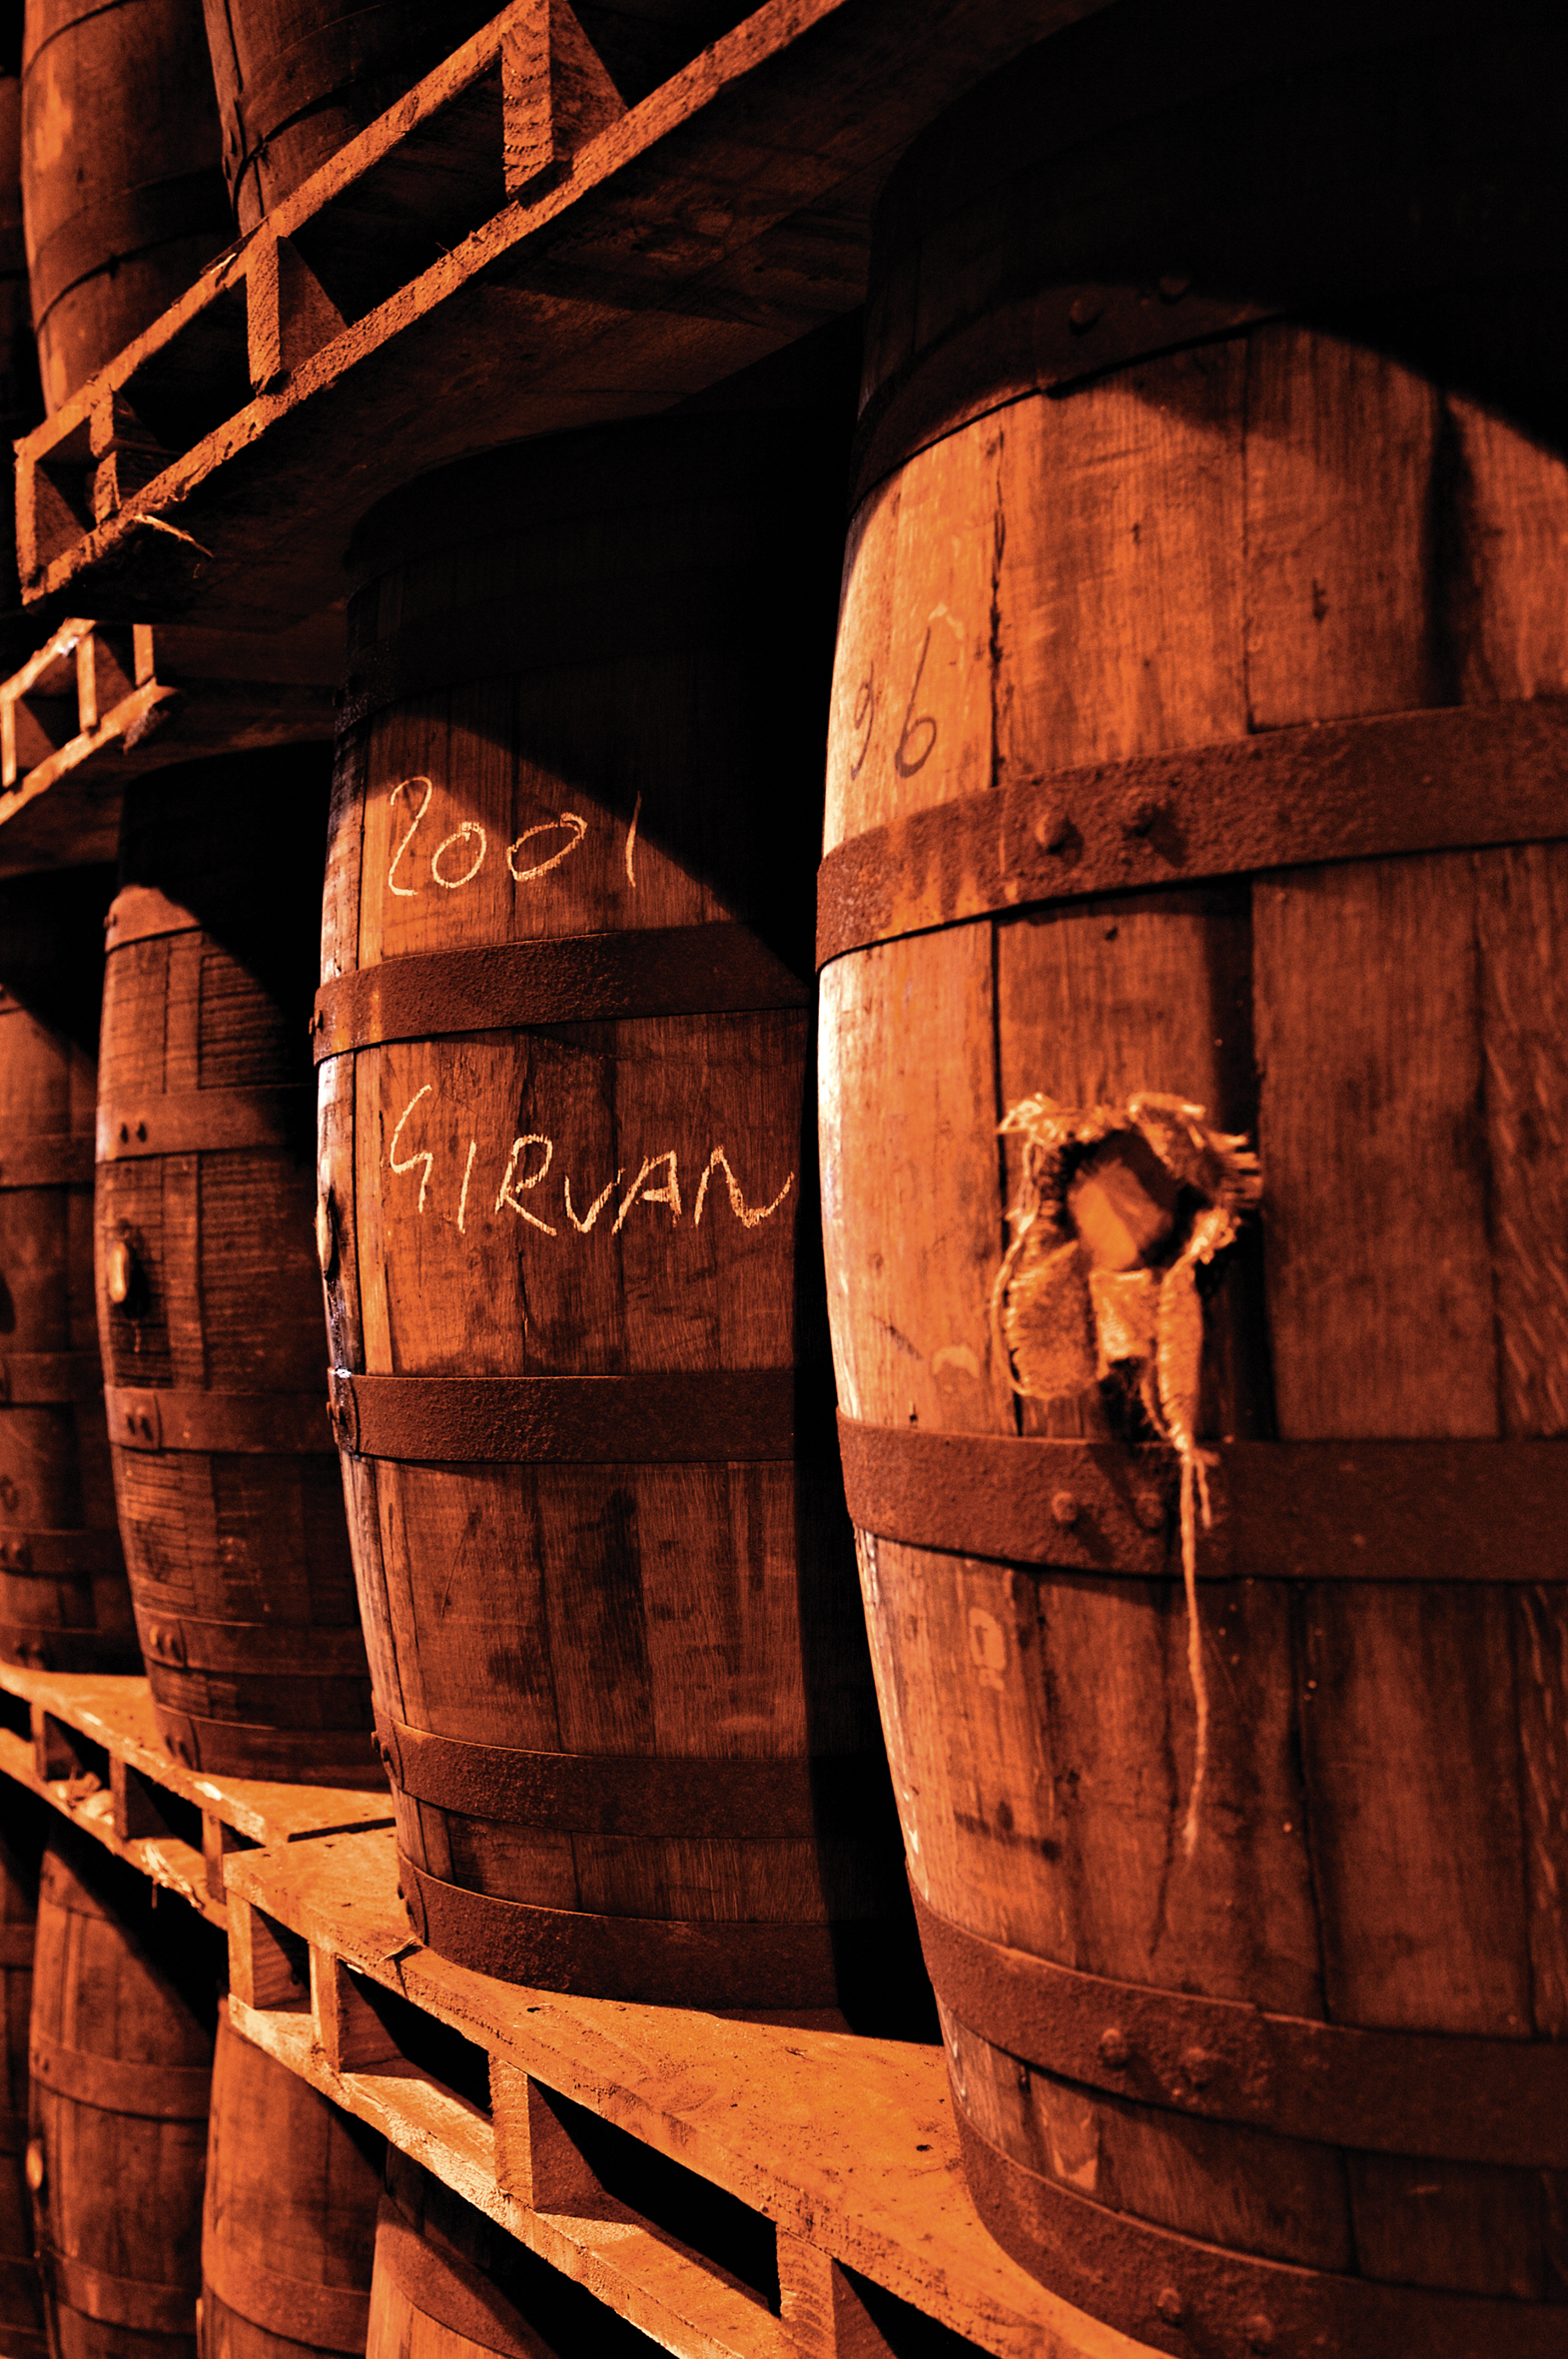 3880_hi_grants_distillery_maturation_casks_2_lo_res_jpeg.jpg